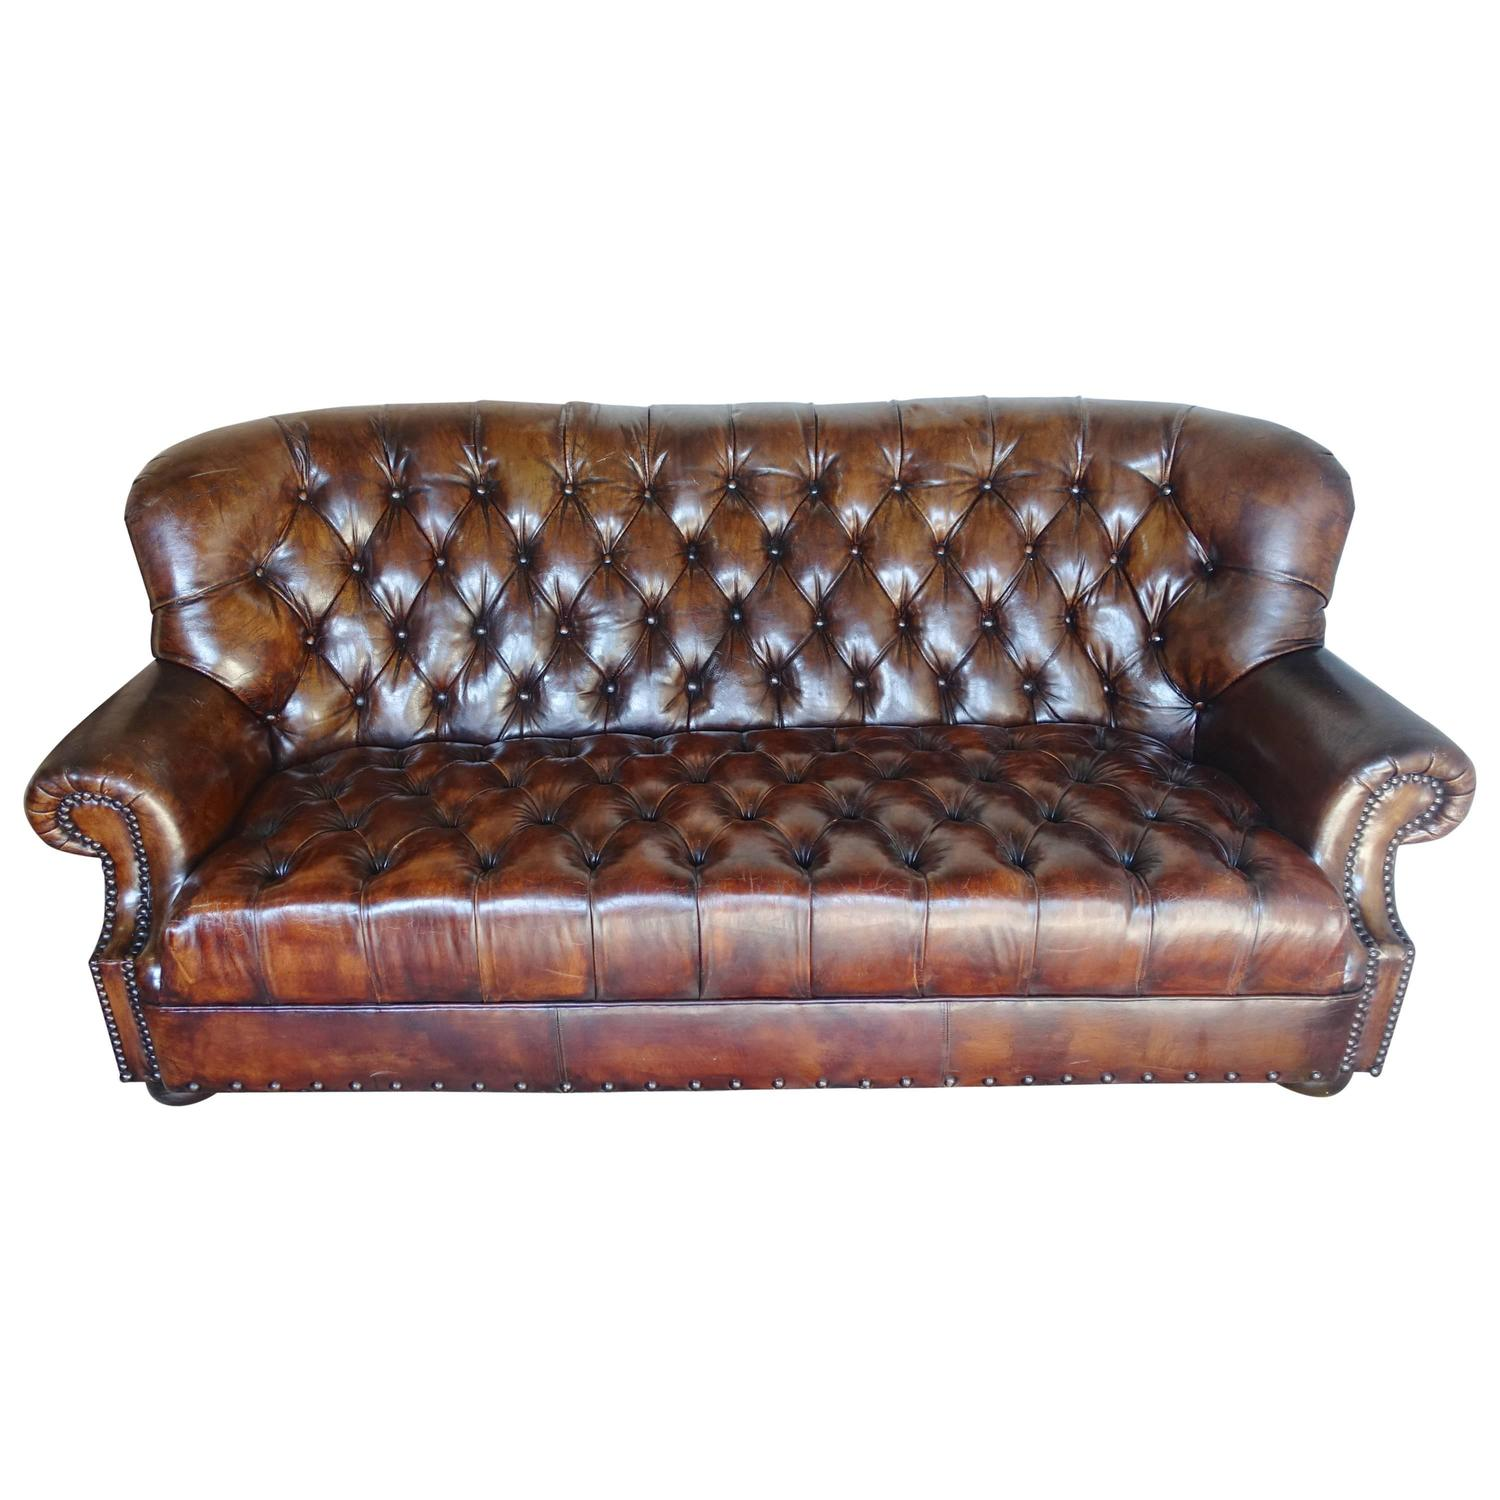 english leather tufted sofa circa 1930s melissa levinson antiques. Black Bedroom Furniture Sets. Home Design Ideas